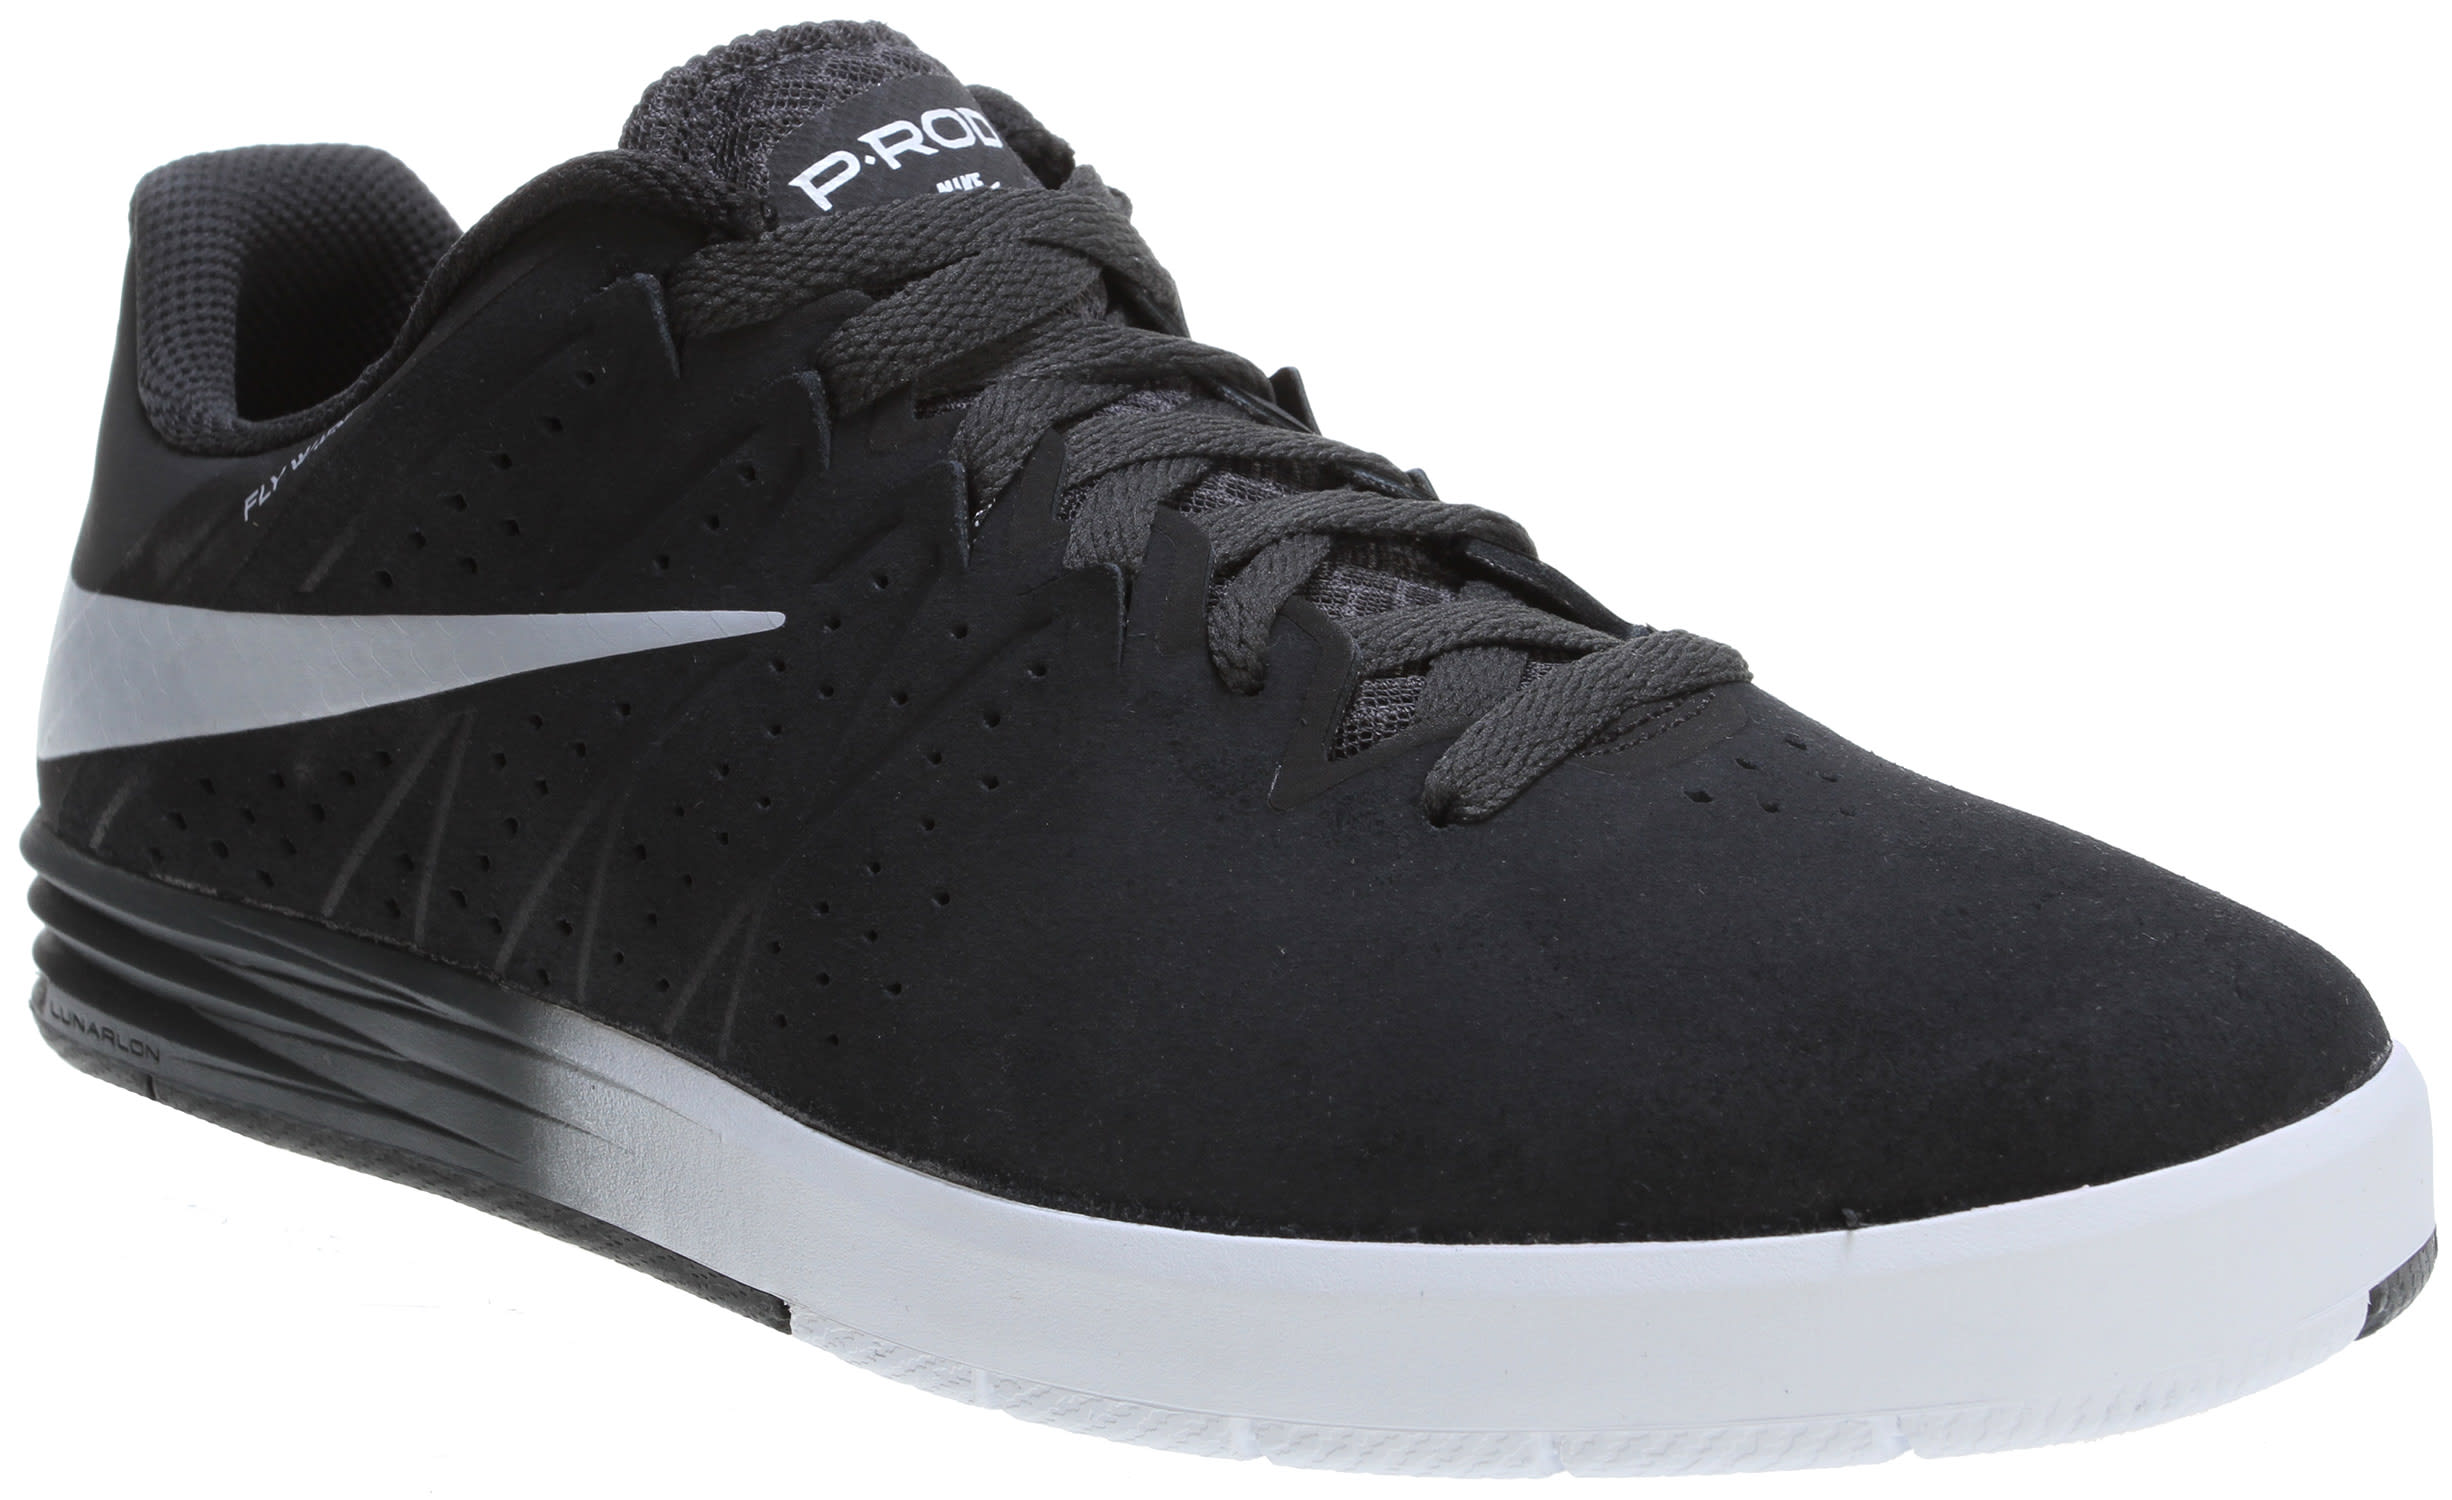 Nike Paul Rodriguez Citadel SB Skate Shoes